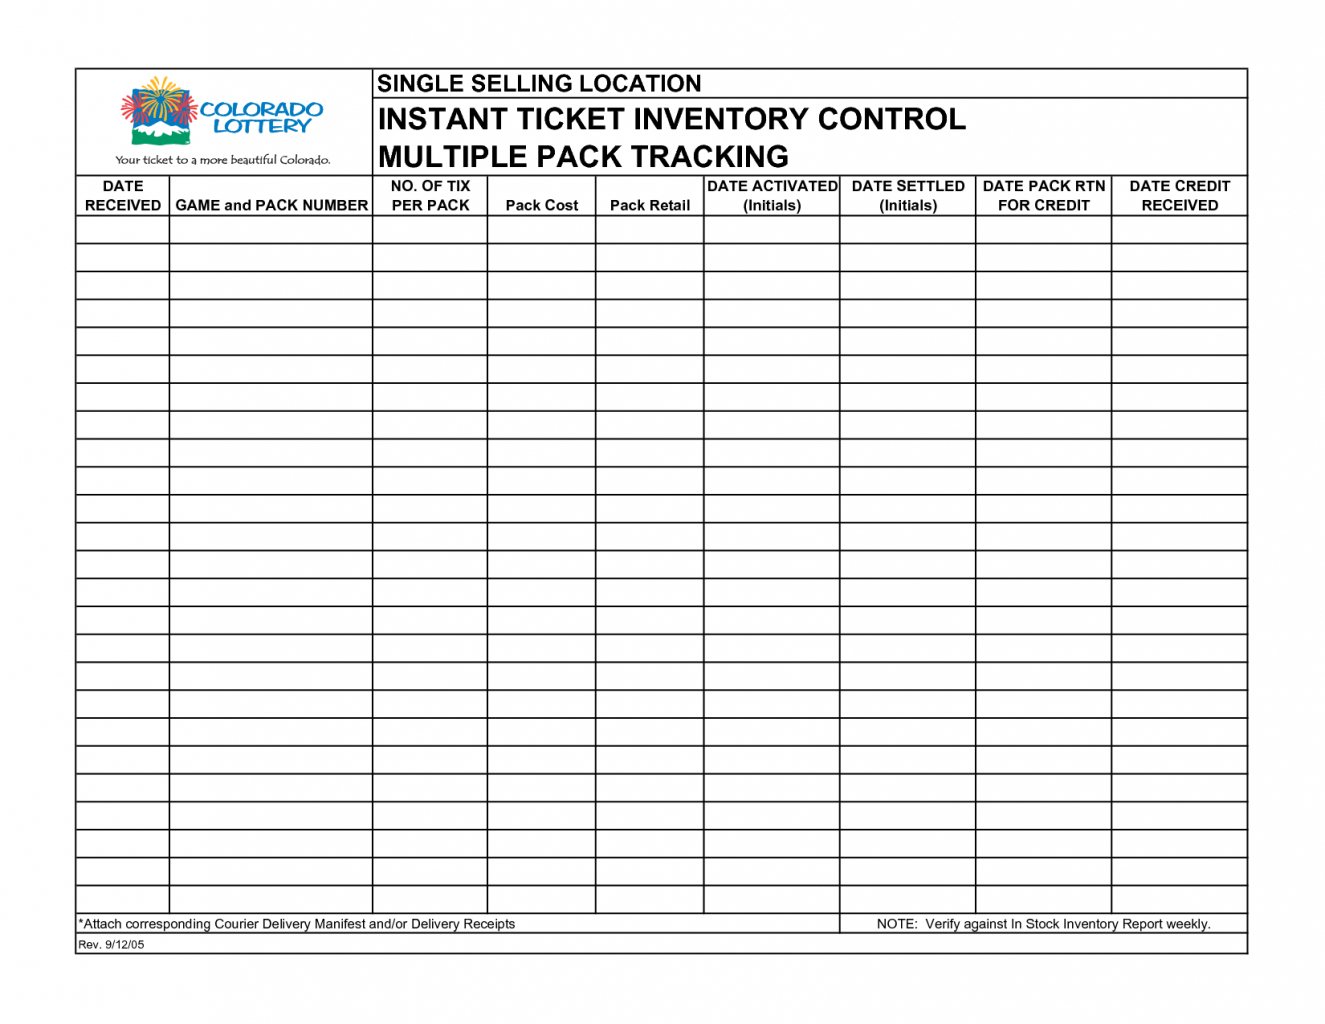 free consignment inventory tracking spreadsheet spreadsheet downloa free consignment inventory